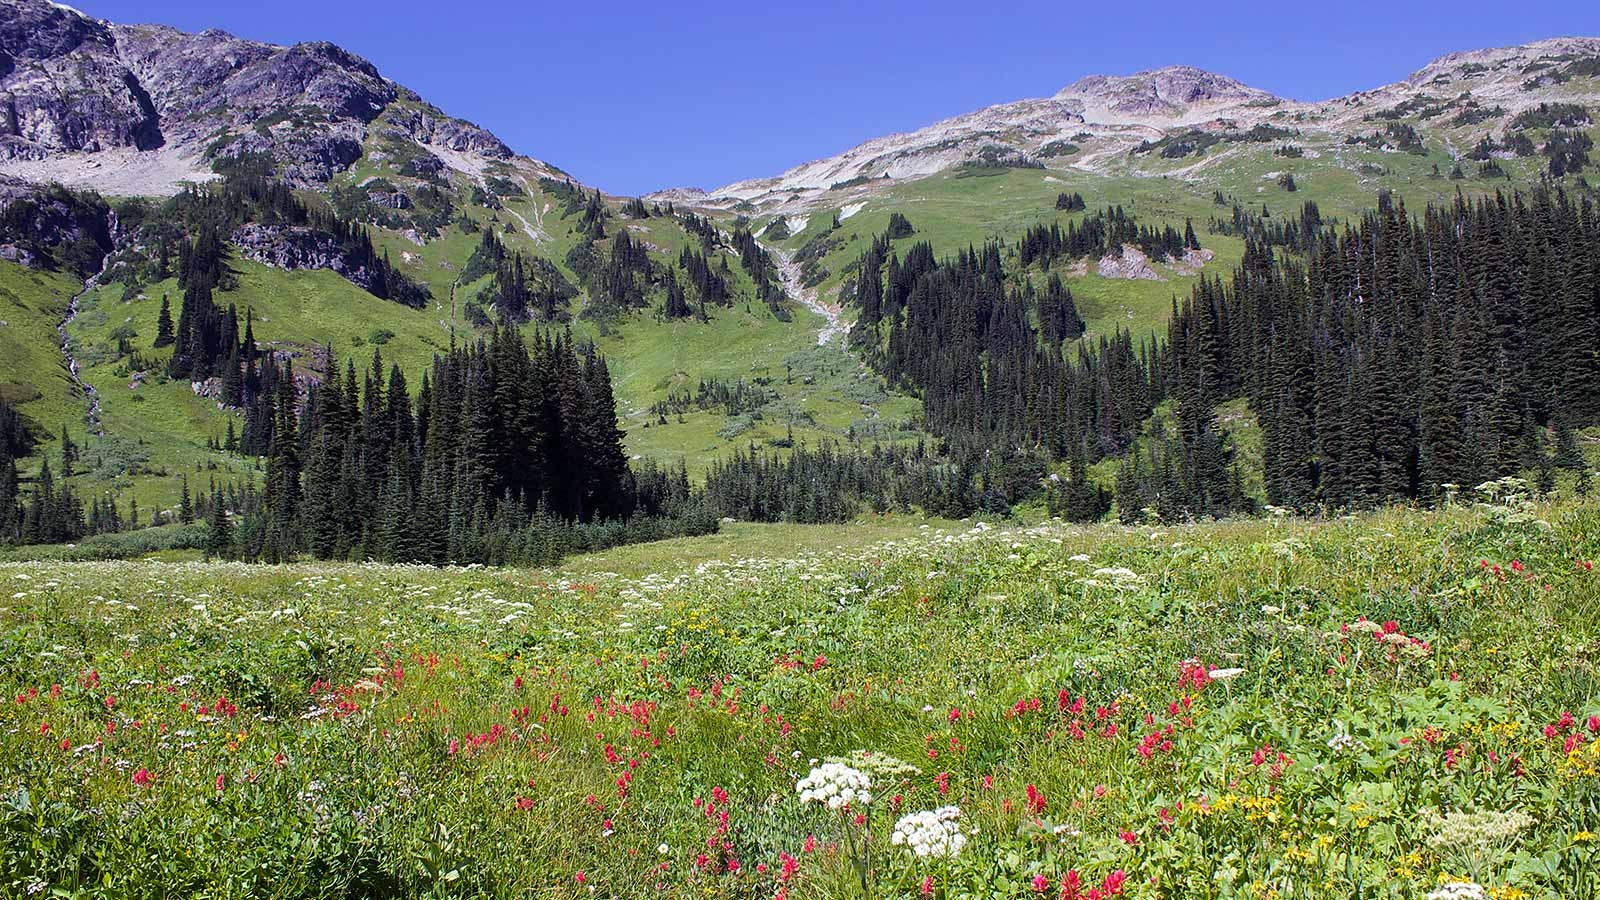 Beautiful mountain landscape with blooming meadow in the front near Pemberton & Whistler